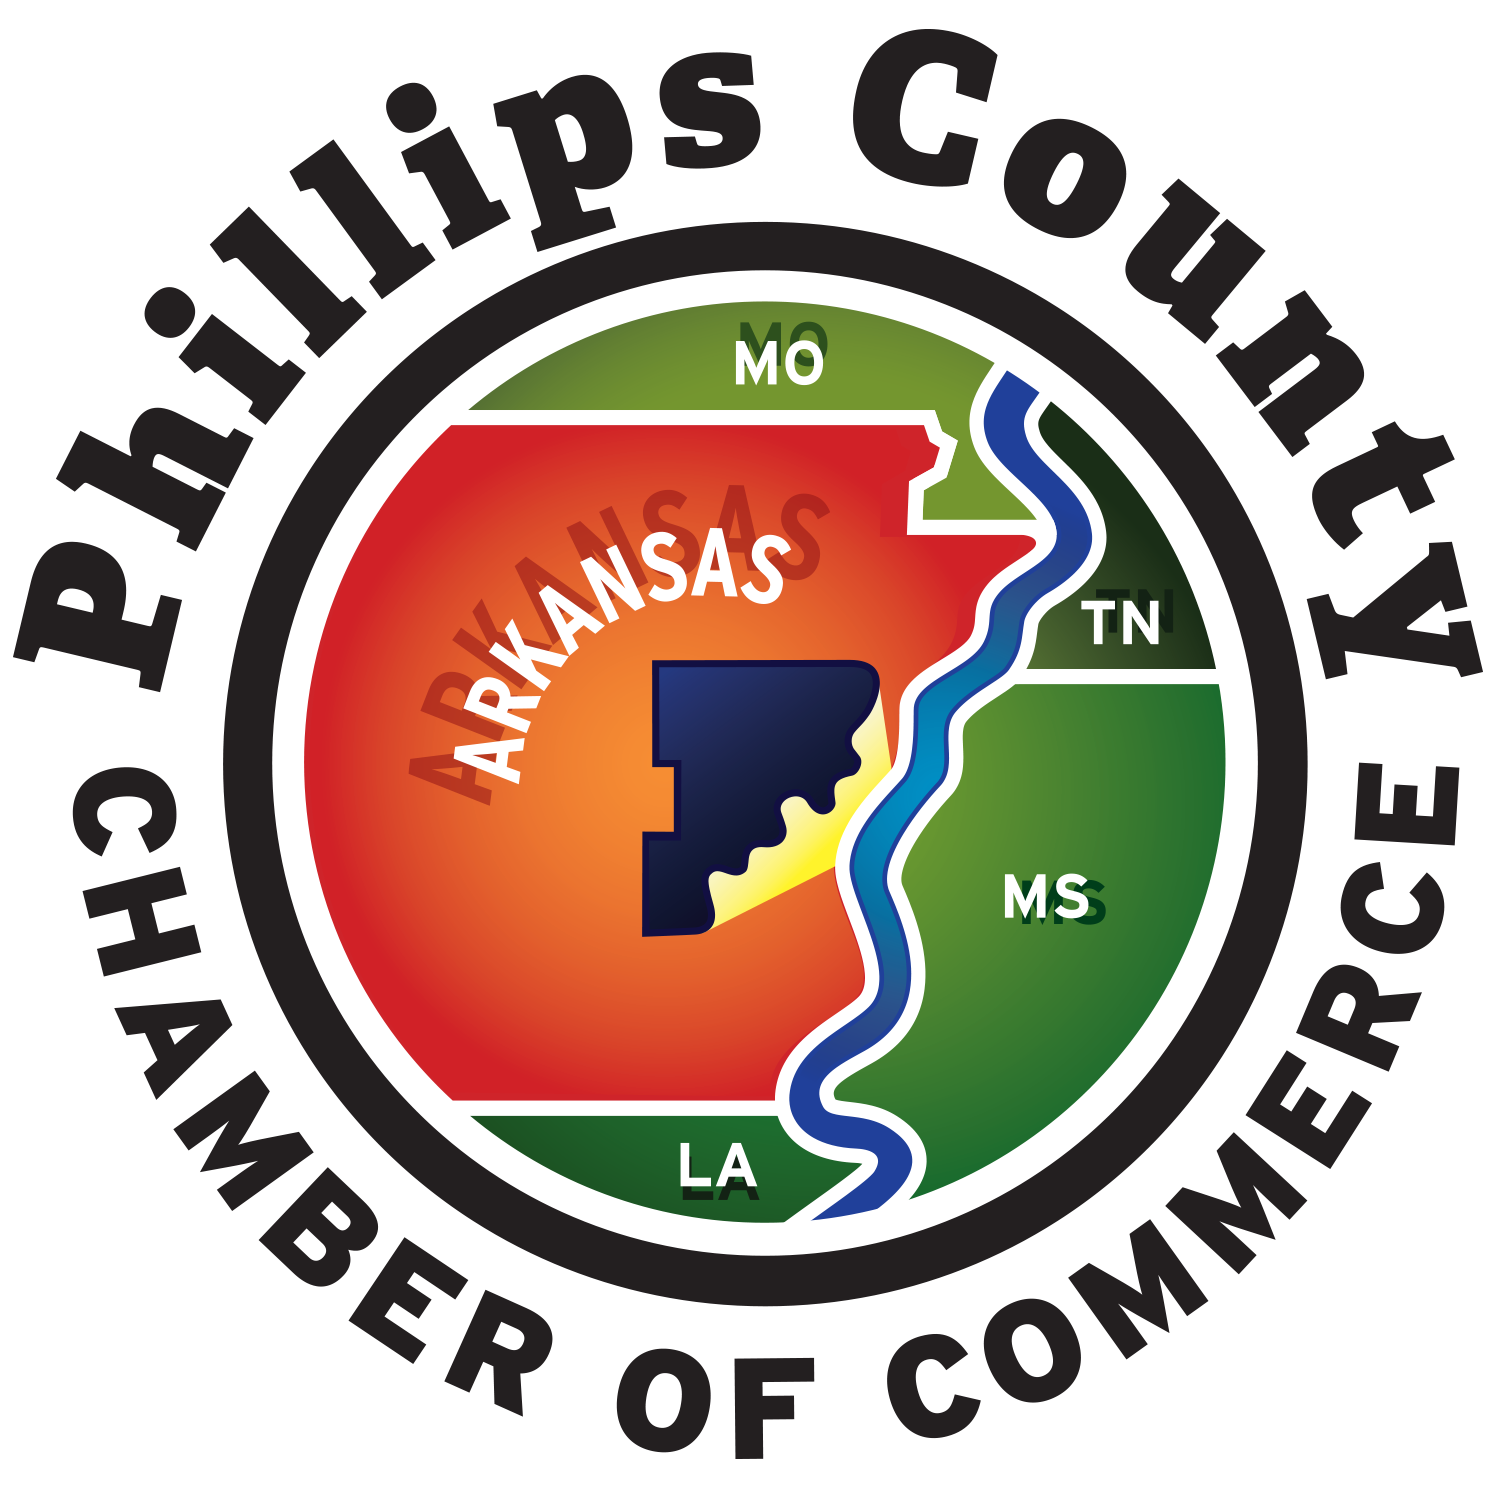 Phillips County Chamber of Commerce